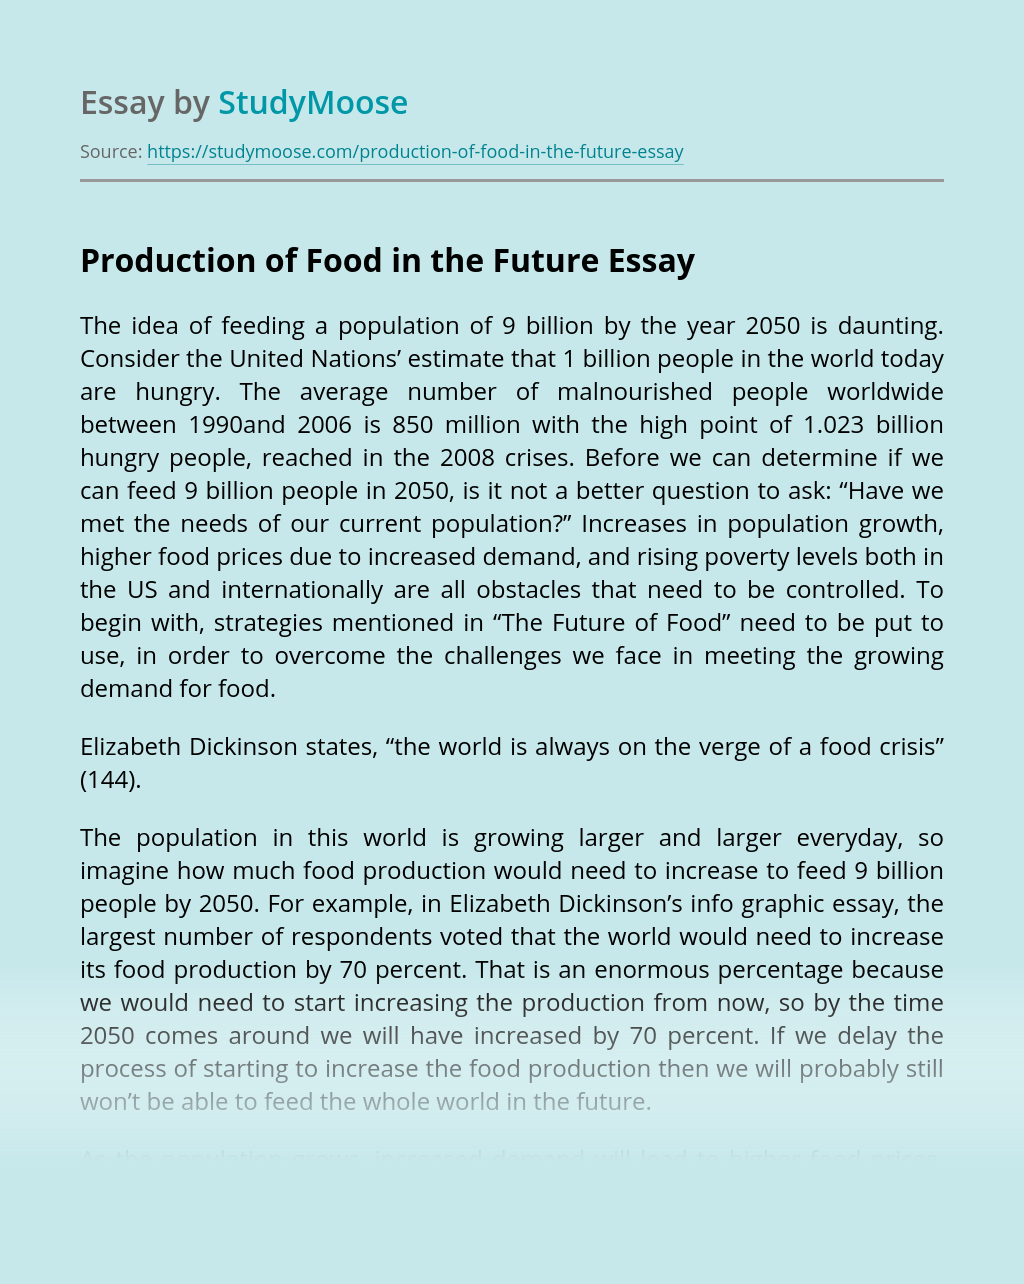 Production of Food in the Future